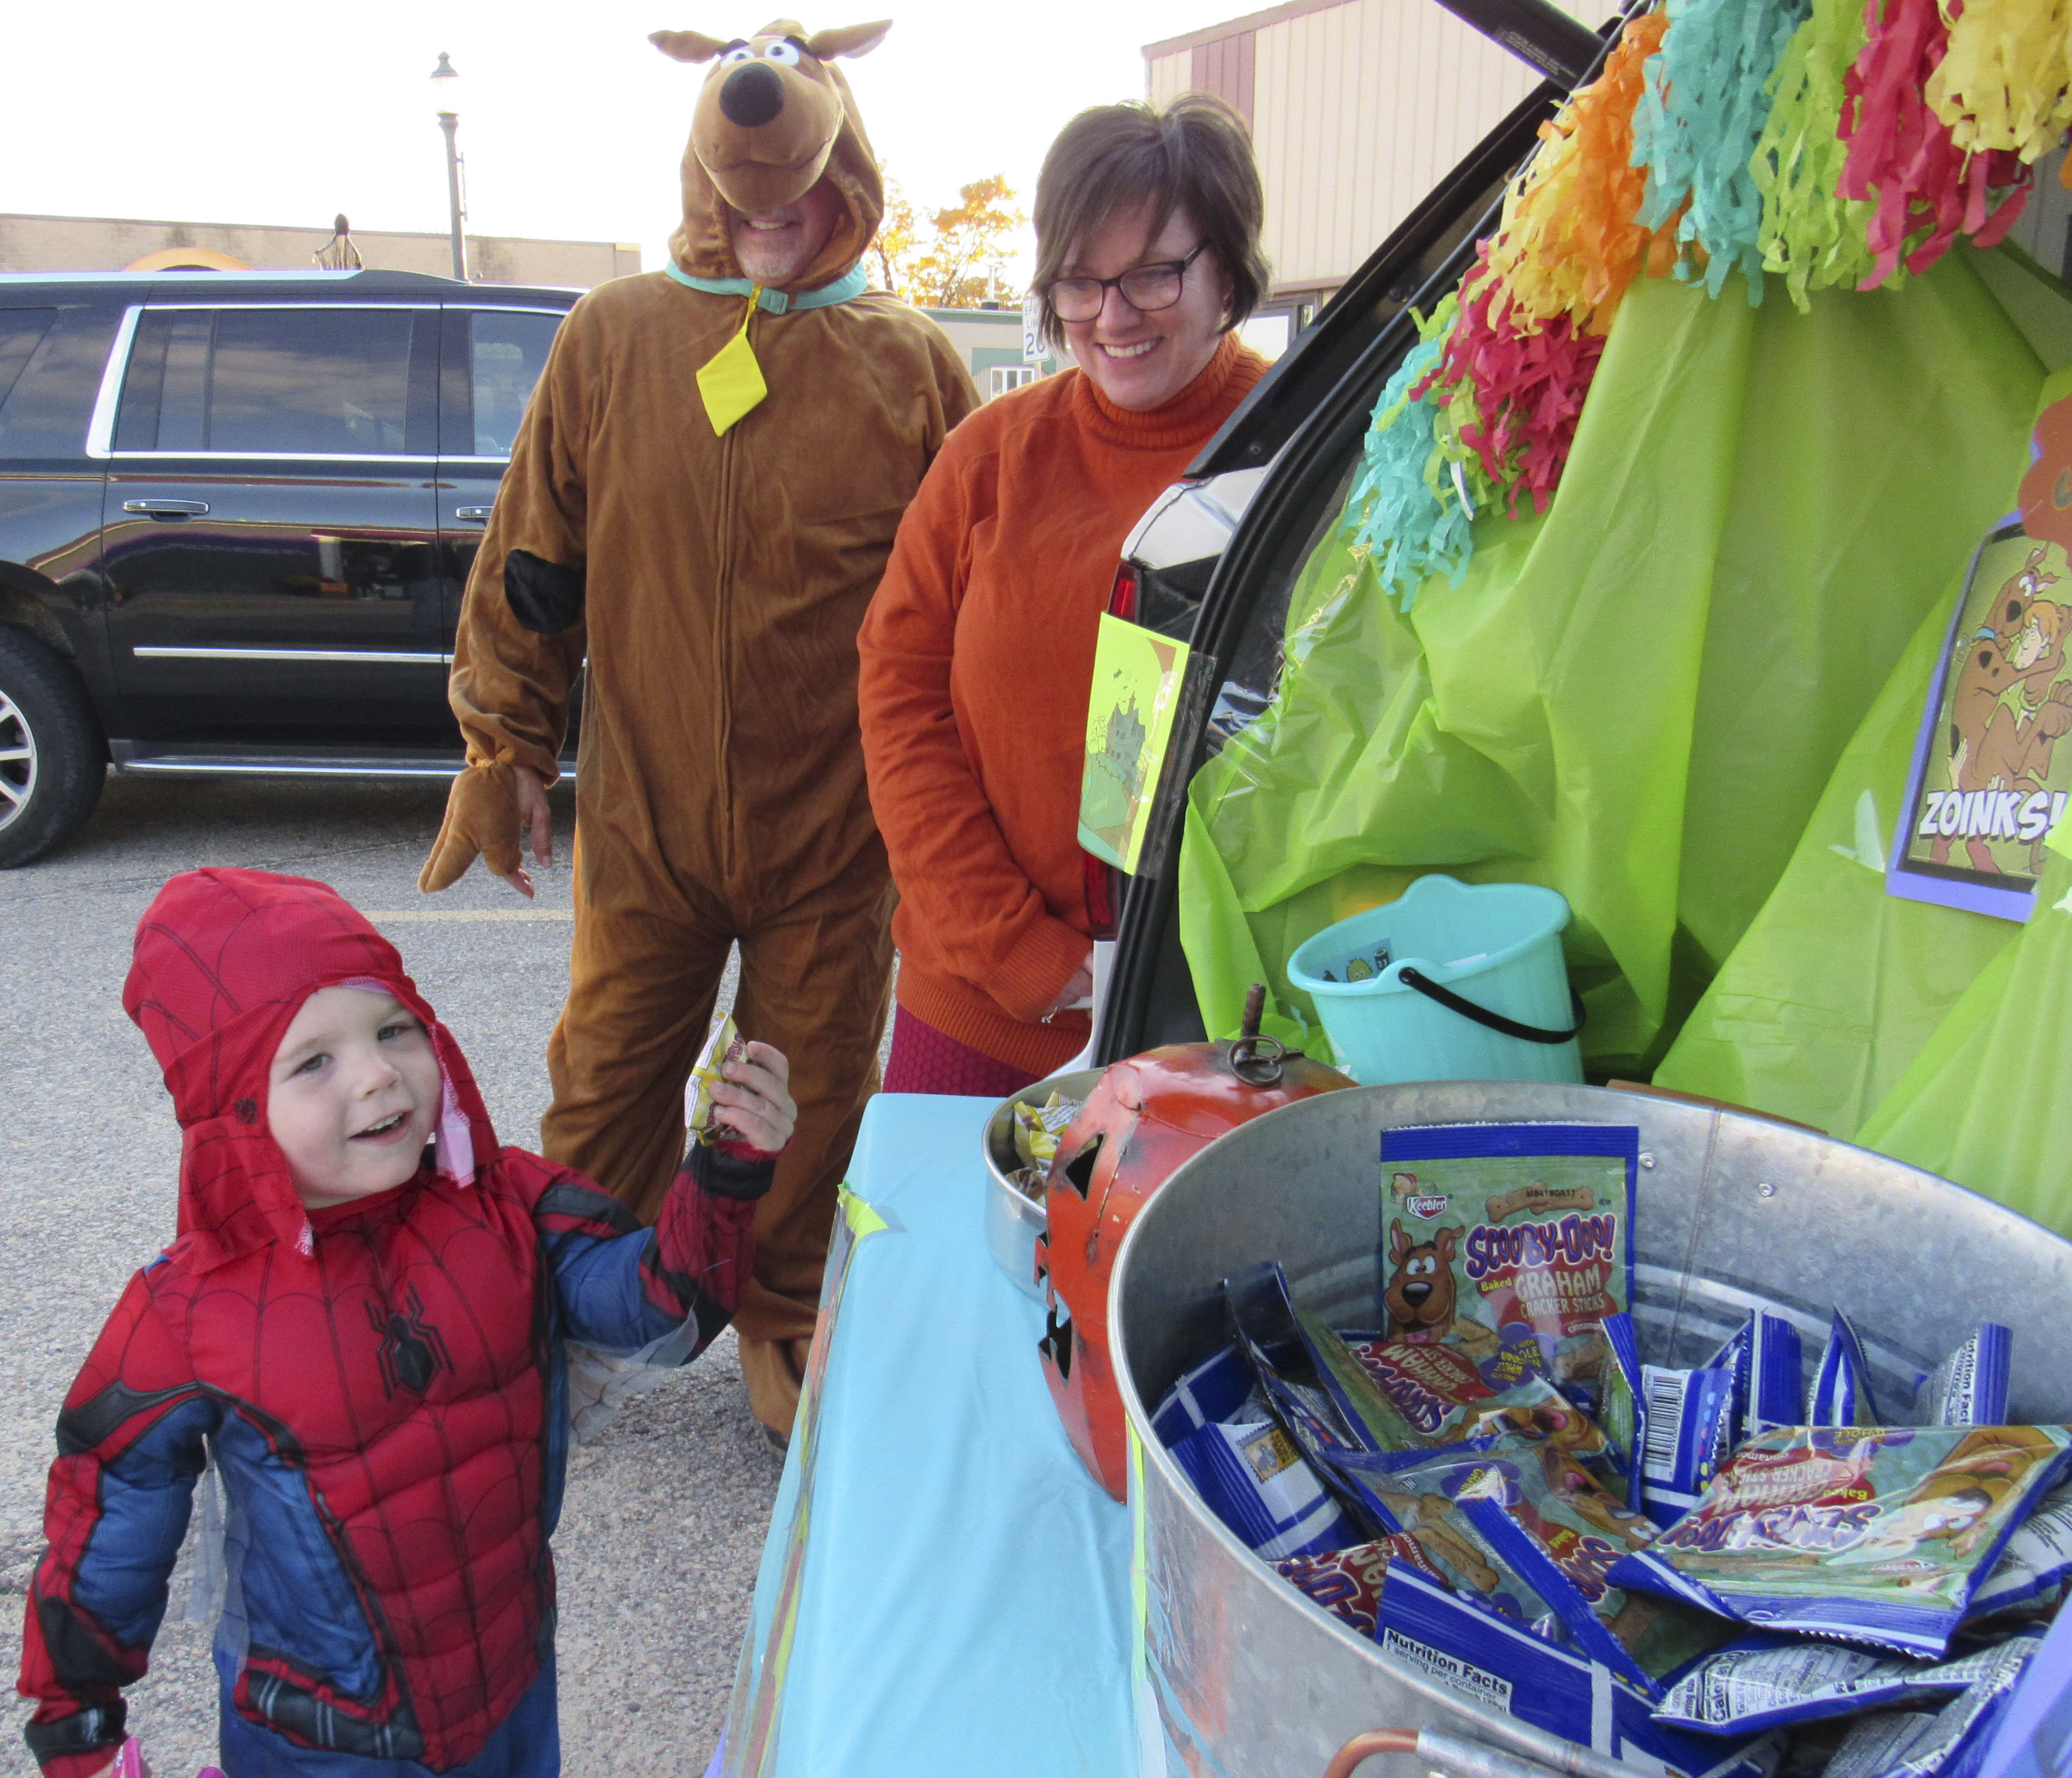 Evan Fitzpatrick gets his Scooby snacks from Scooby Doo and Velma (Bryan and Kris Barnhart) with All Seasons Auto Body. Several businesses were present in the downtown district for Monticello's annual Treats on the Streets event. (Photos by Kim Brooks)